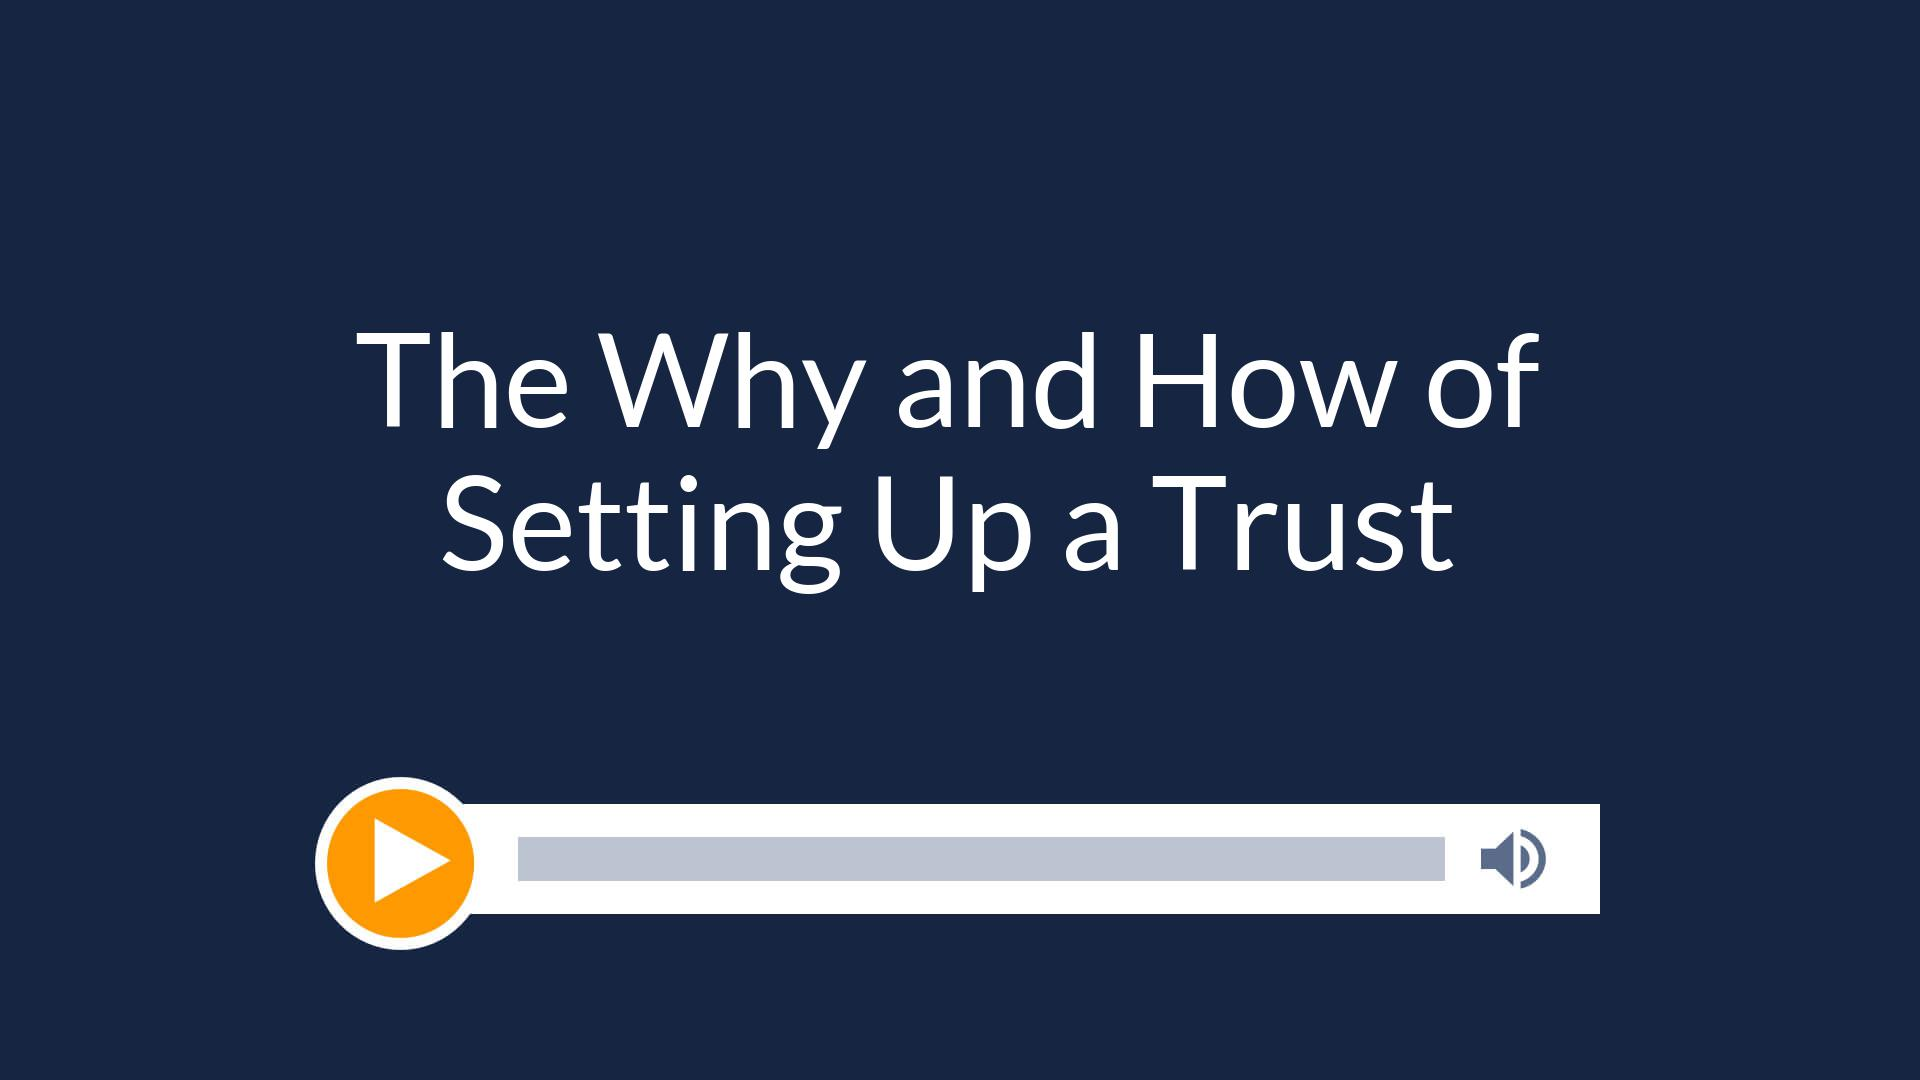 The Why and How of Setting Up a Trust